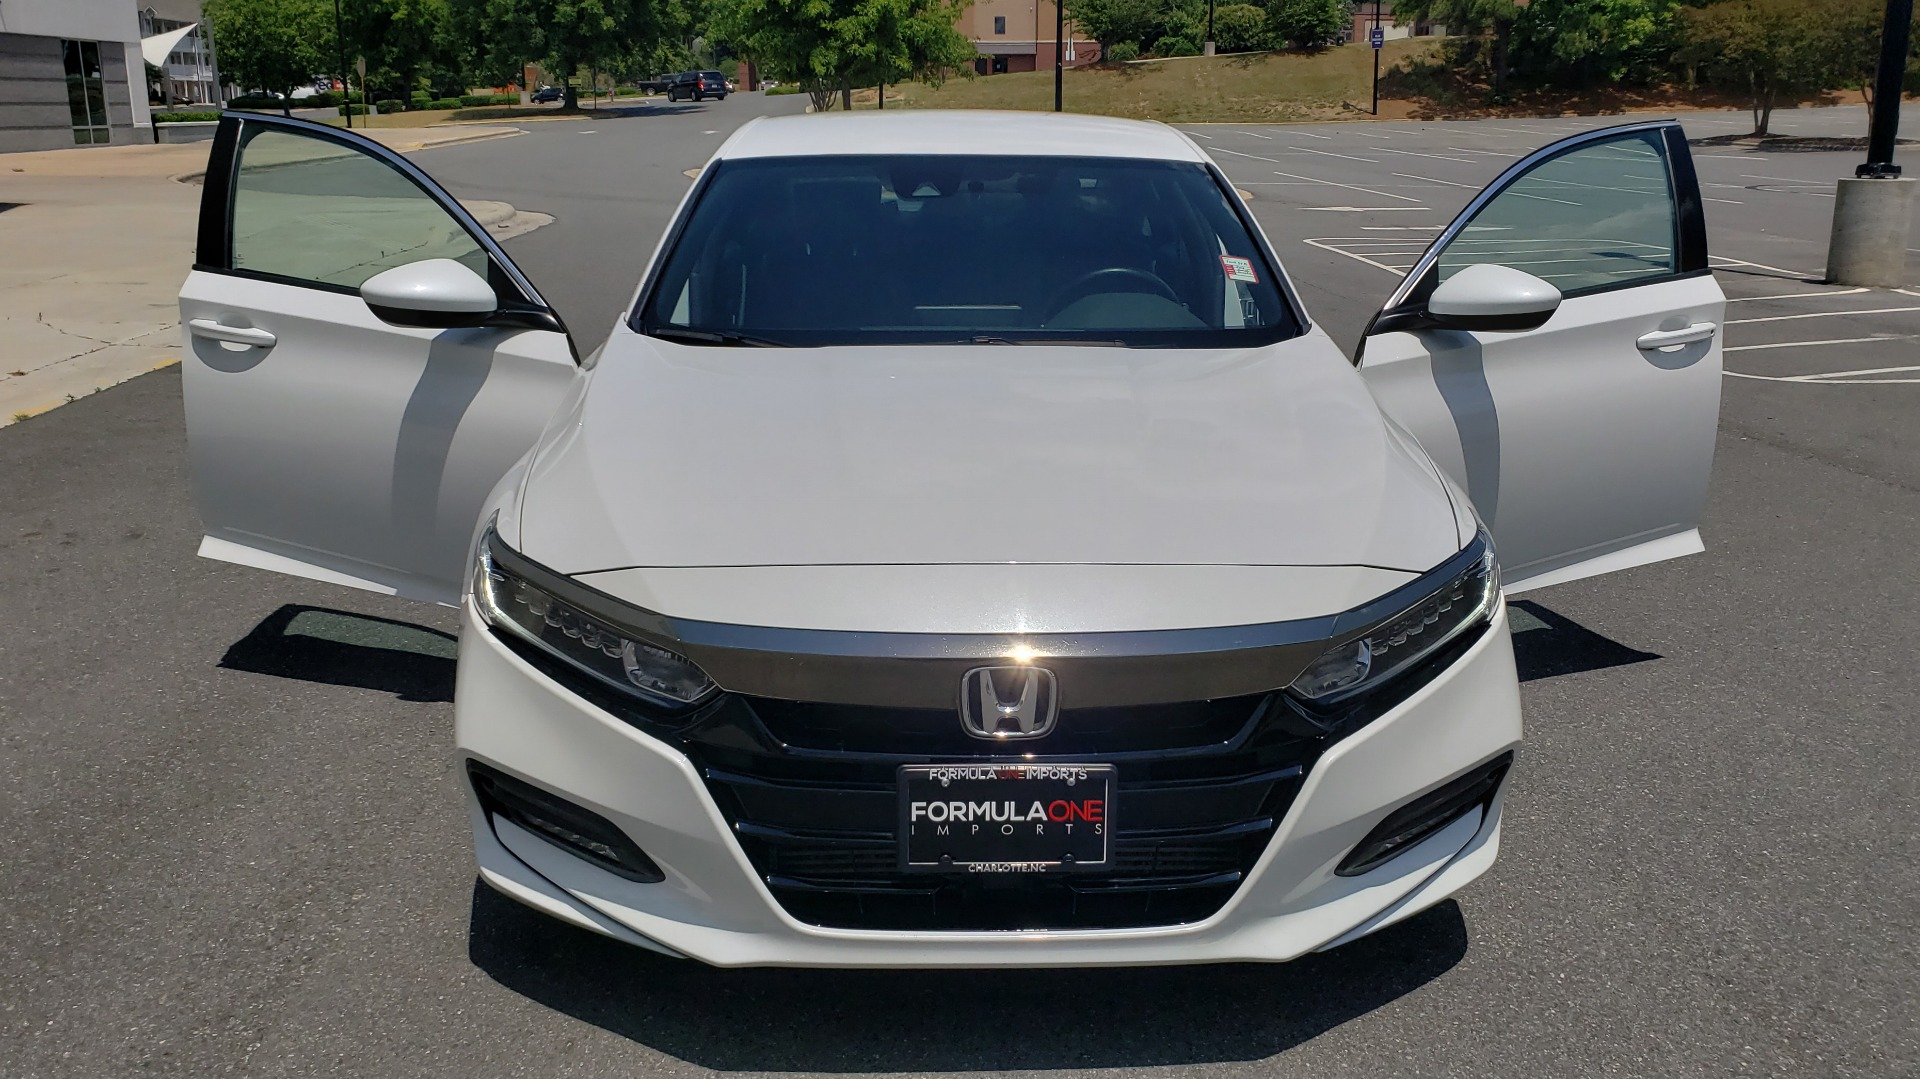 Used 2018 Honda ACCORD SEDAN SPORT 1.5T / CVT TRANS / FWD / 19IN WHEELS for sale $20,995 at Formula Imports in Charlotte NC 28227 16